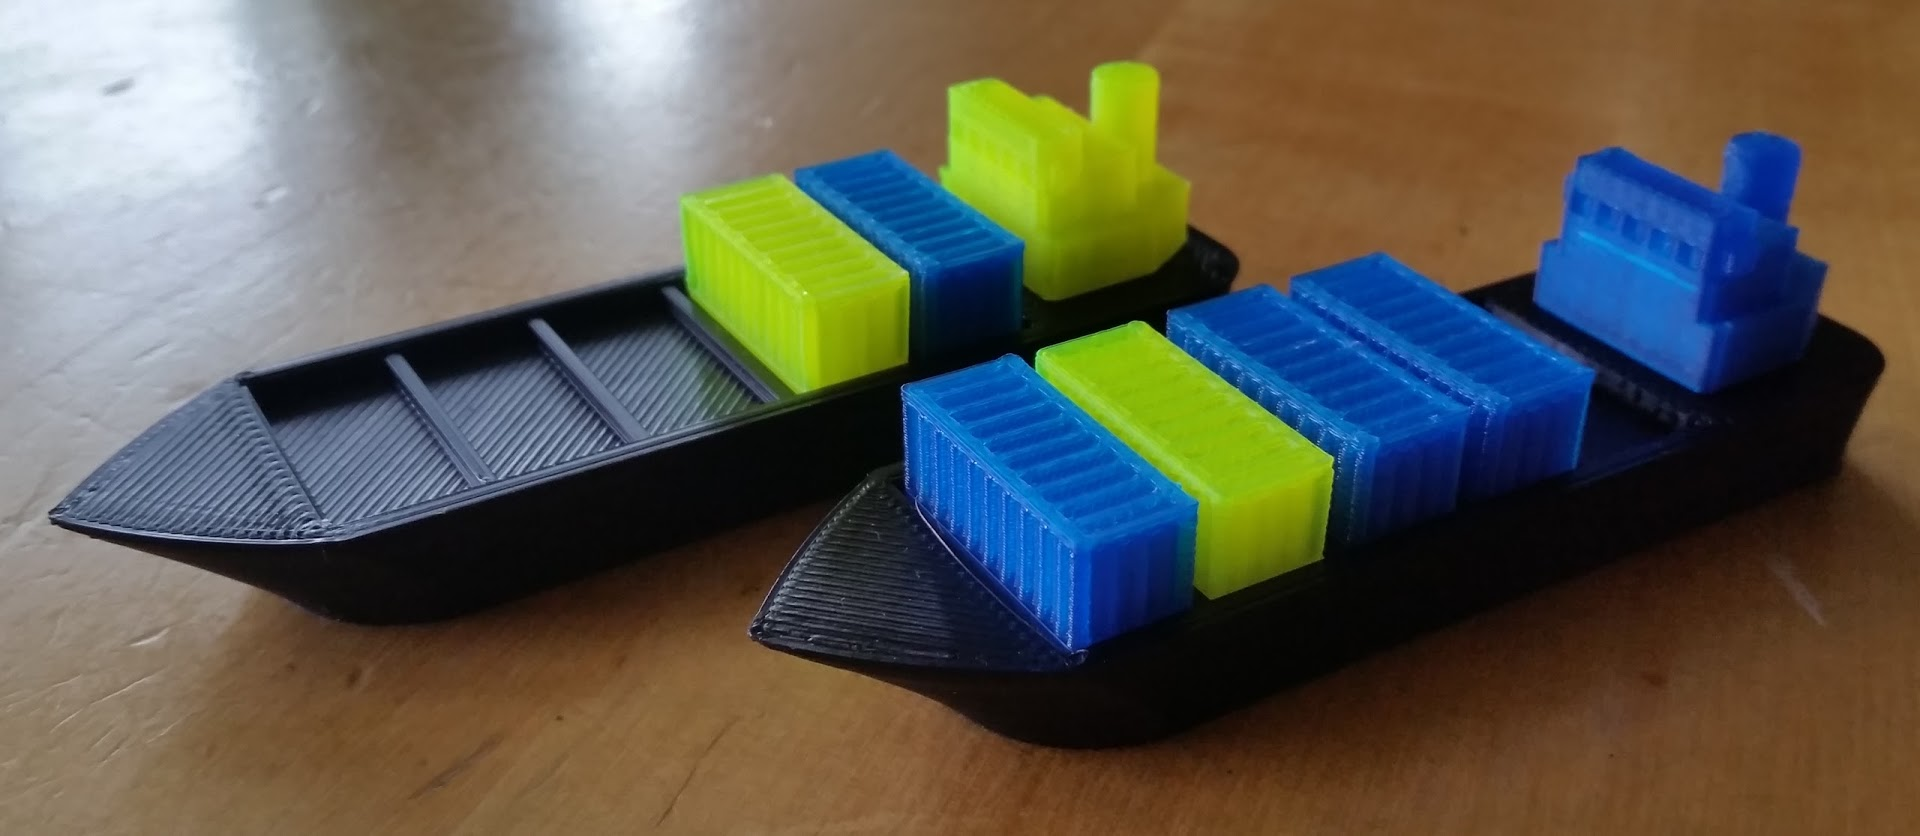 container_board_game_3d_print_003.jpg